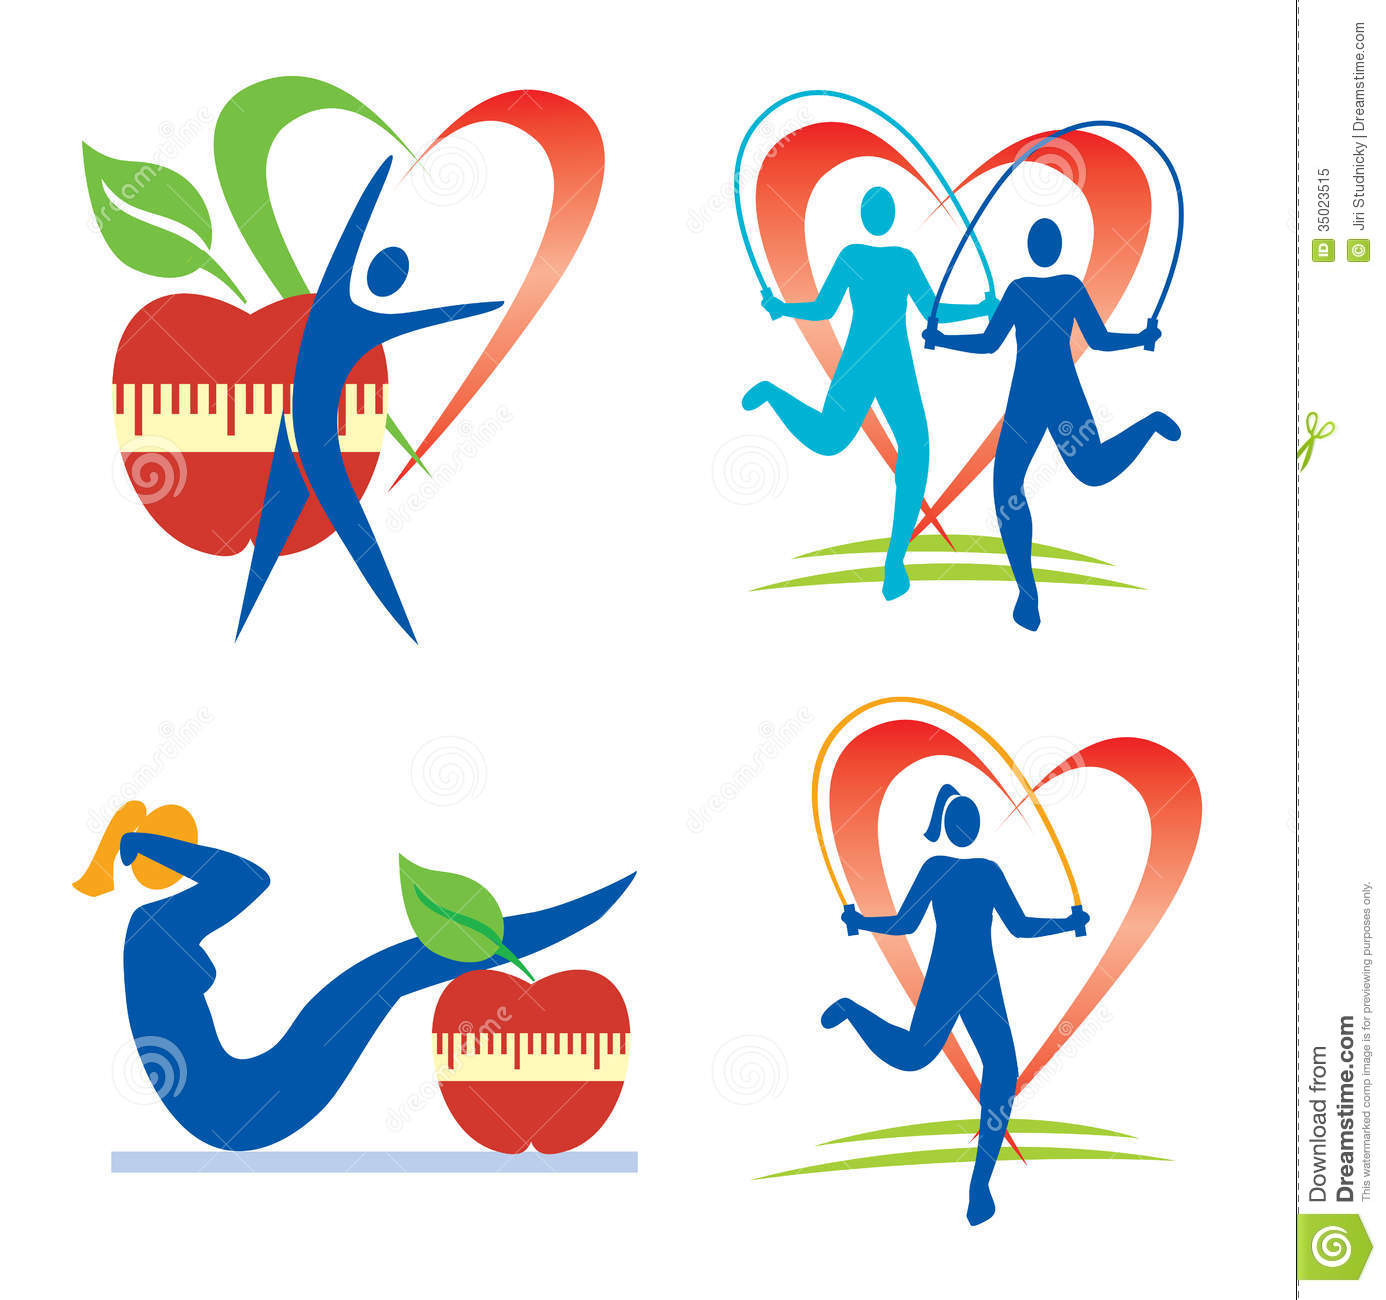 fitness-health-icons-healthy-lifestyle-activities-symbols-vector-illustration-35023515.jpg